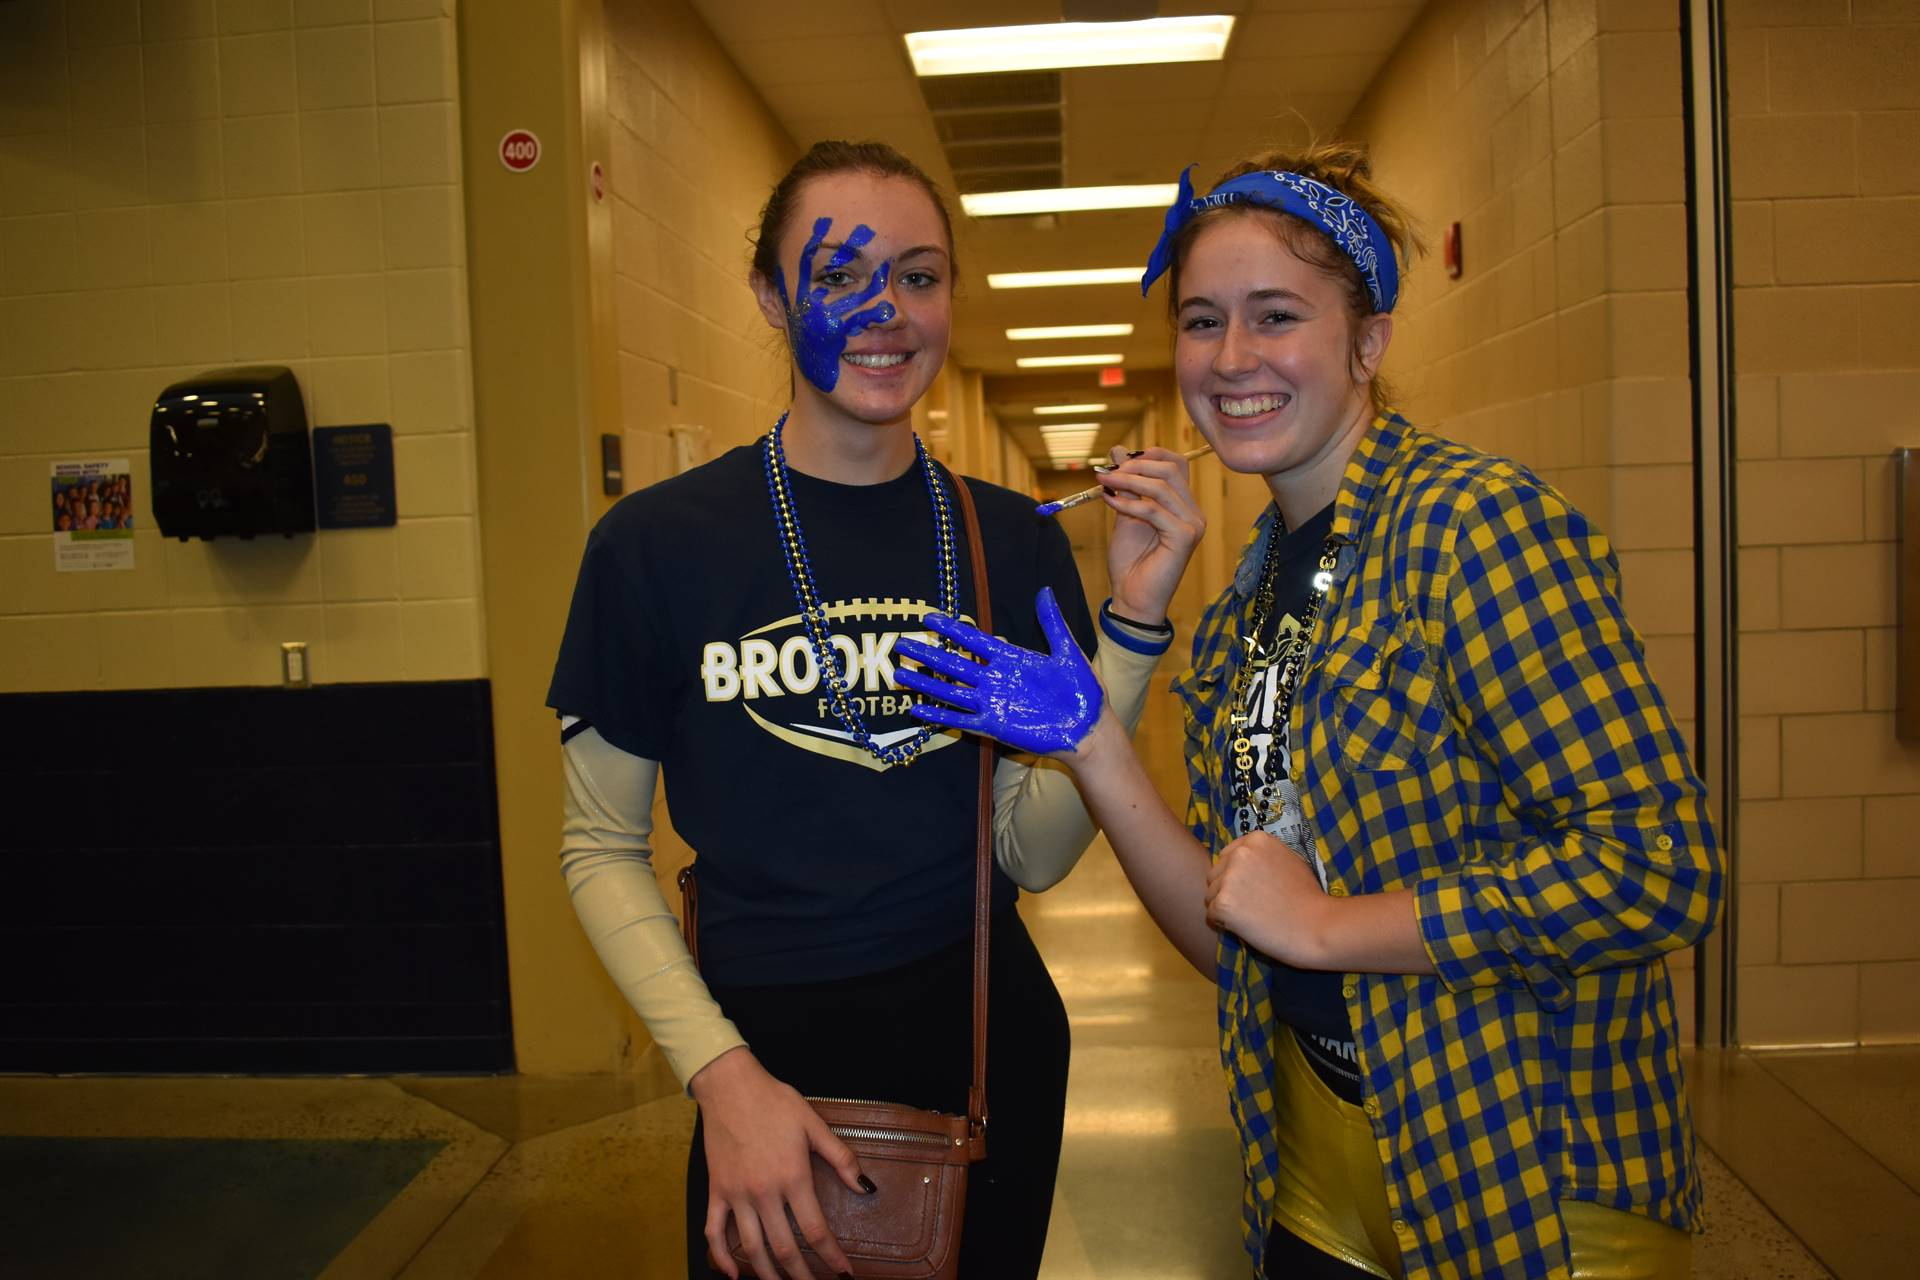 Brookfield High School Spirit Week